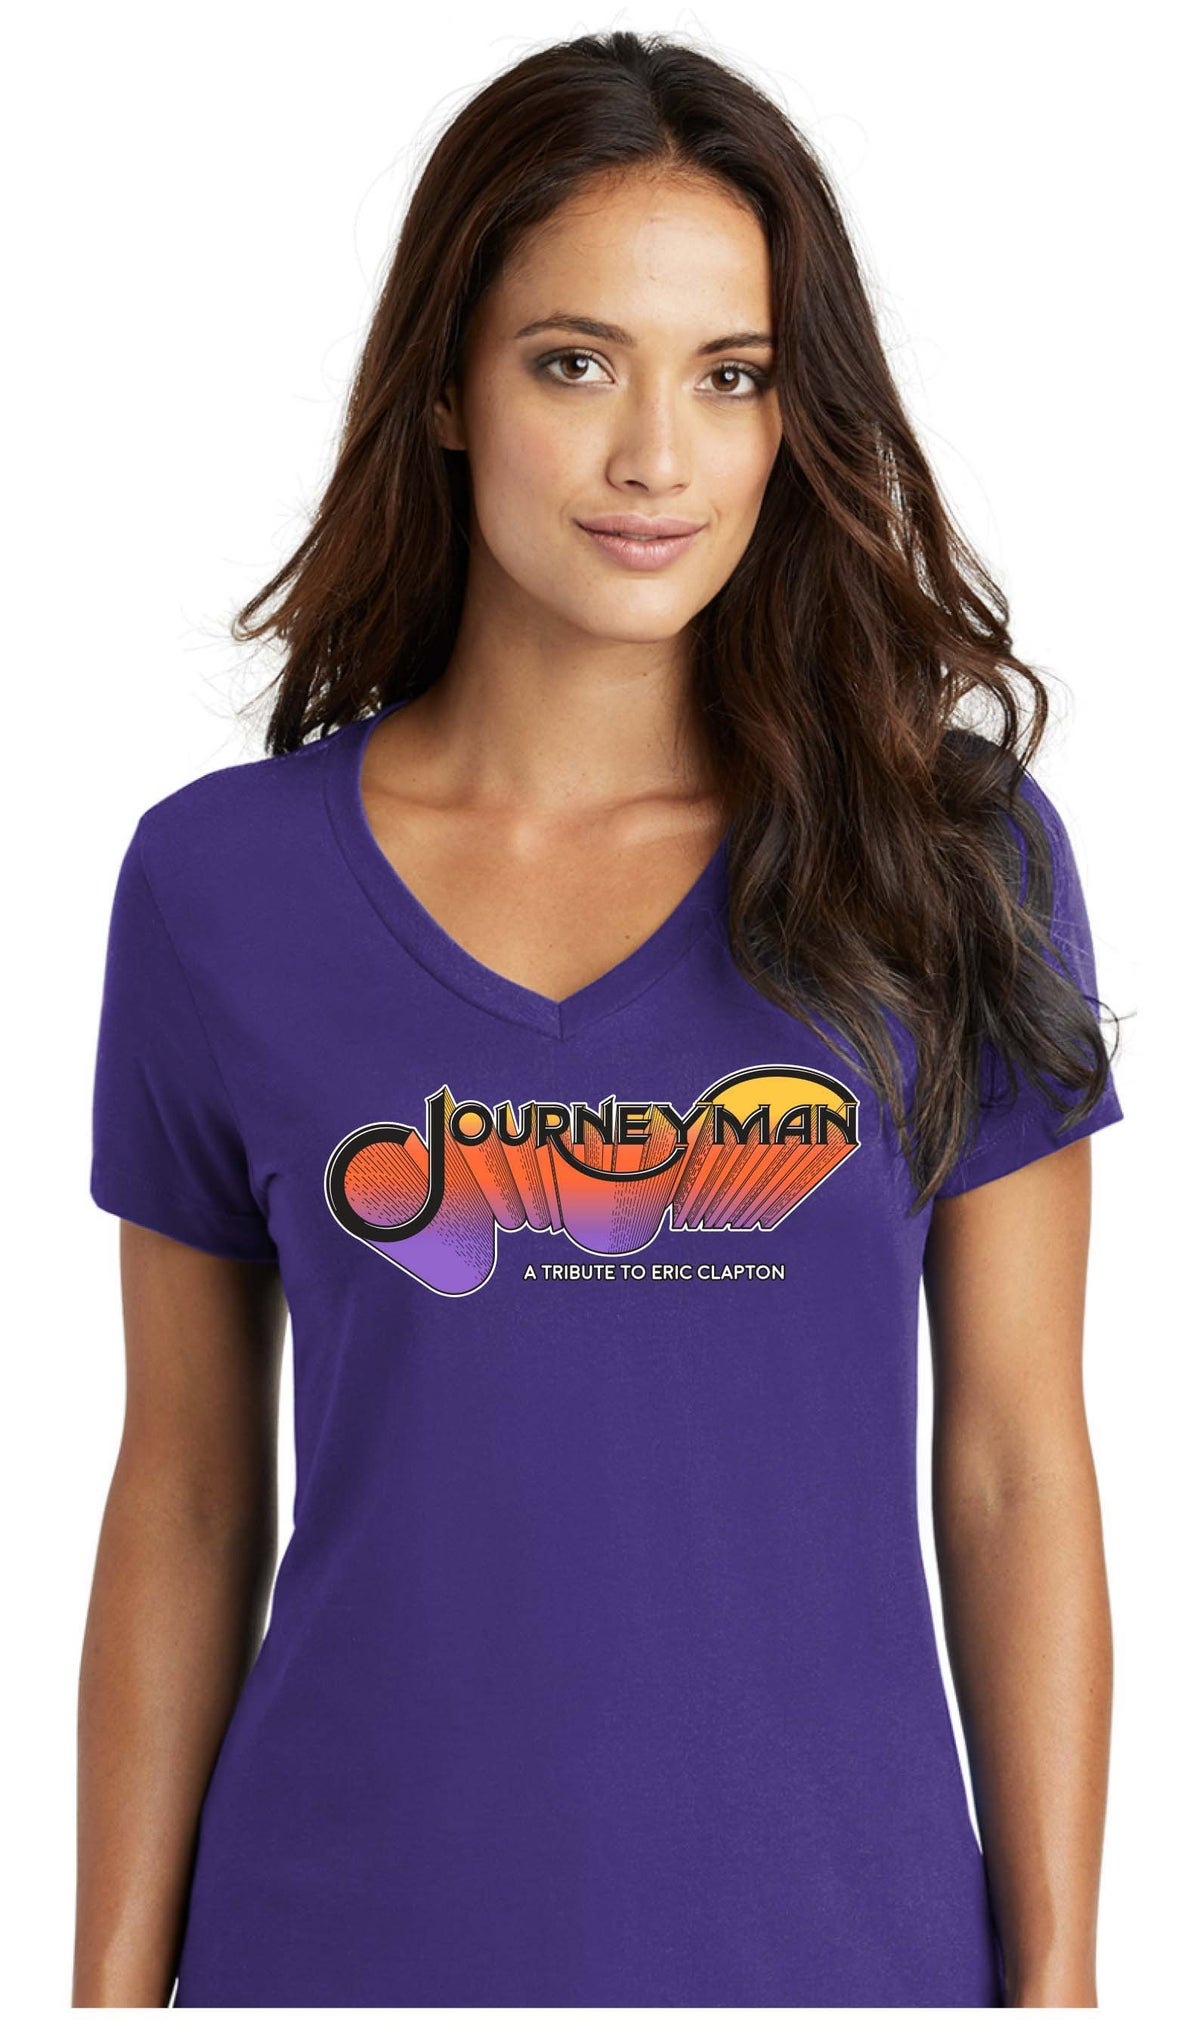 Journeyman V-Neck Ladies Tee - Purple